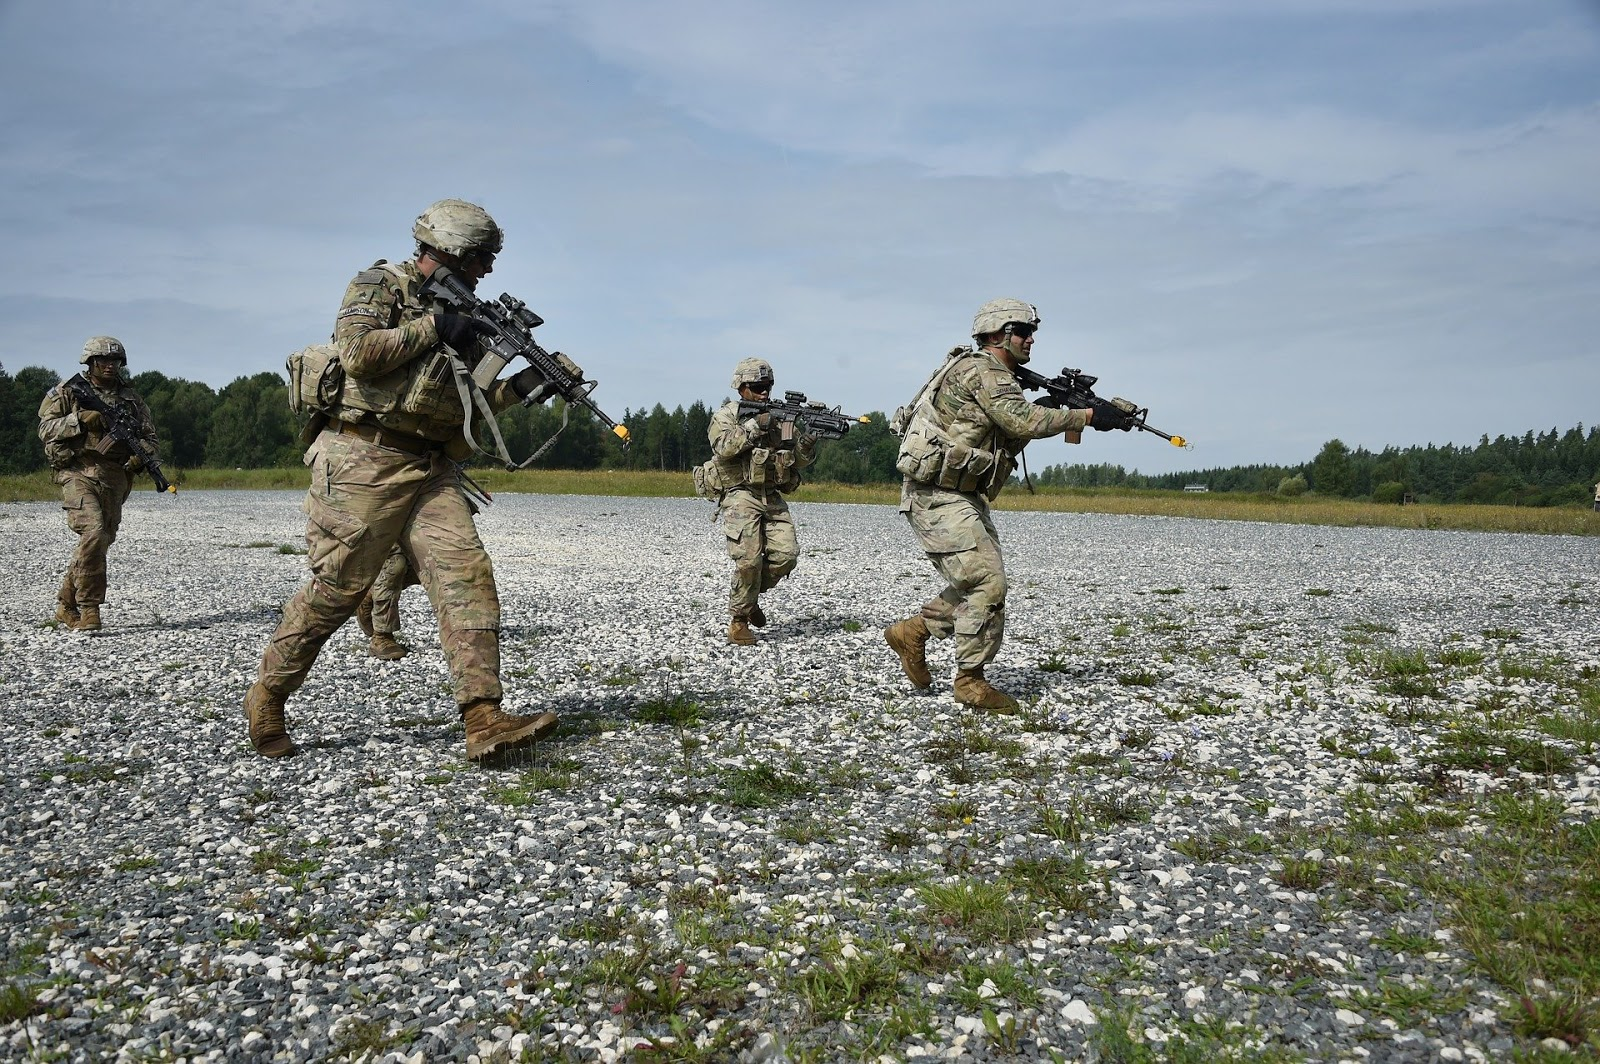 four soldiers tactically move in formation across an open field to illustrate a blog post about re-watchable war movies